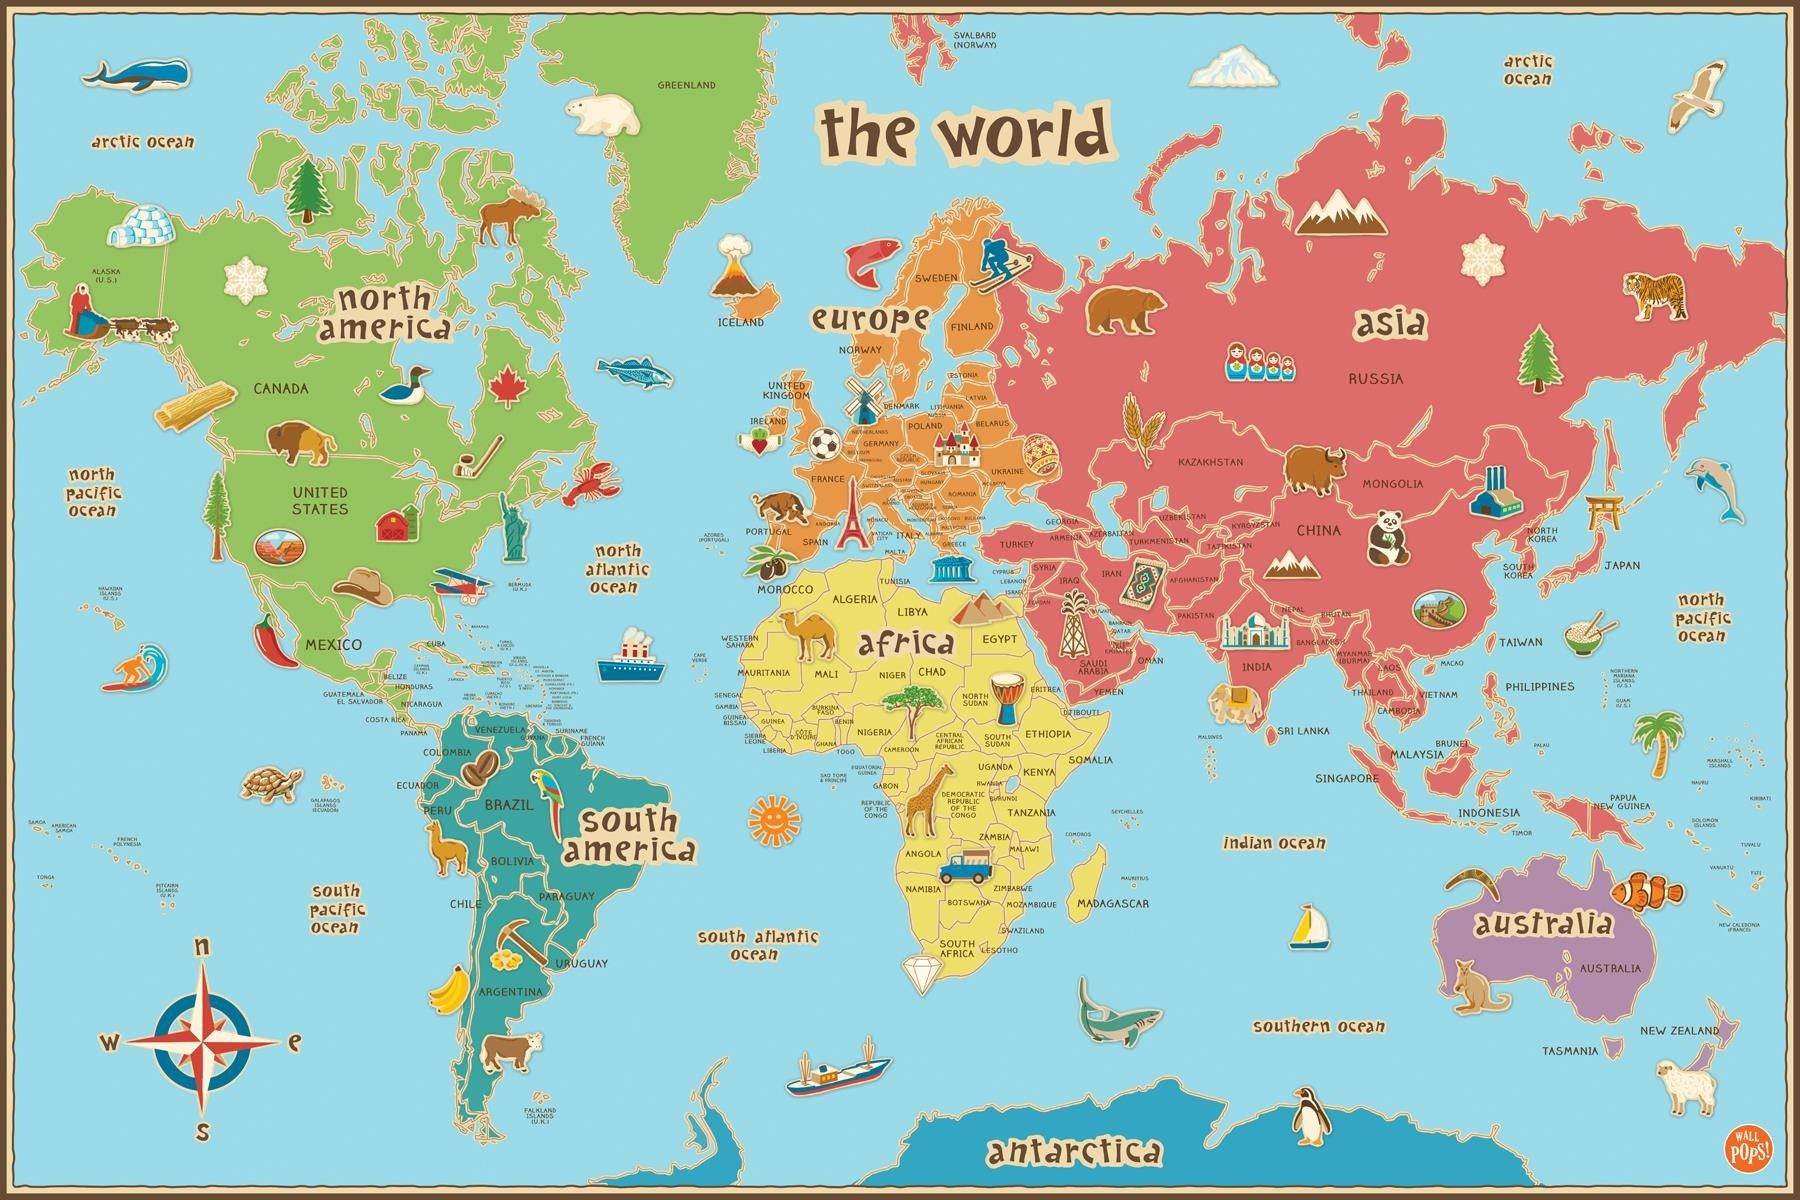 Free Printable World Map For Kids Maps And | Gary's Scattered Mind - Free Printable Road Maps For Kids